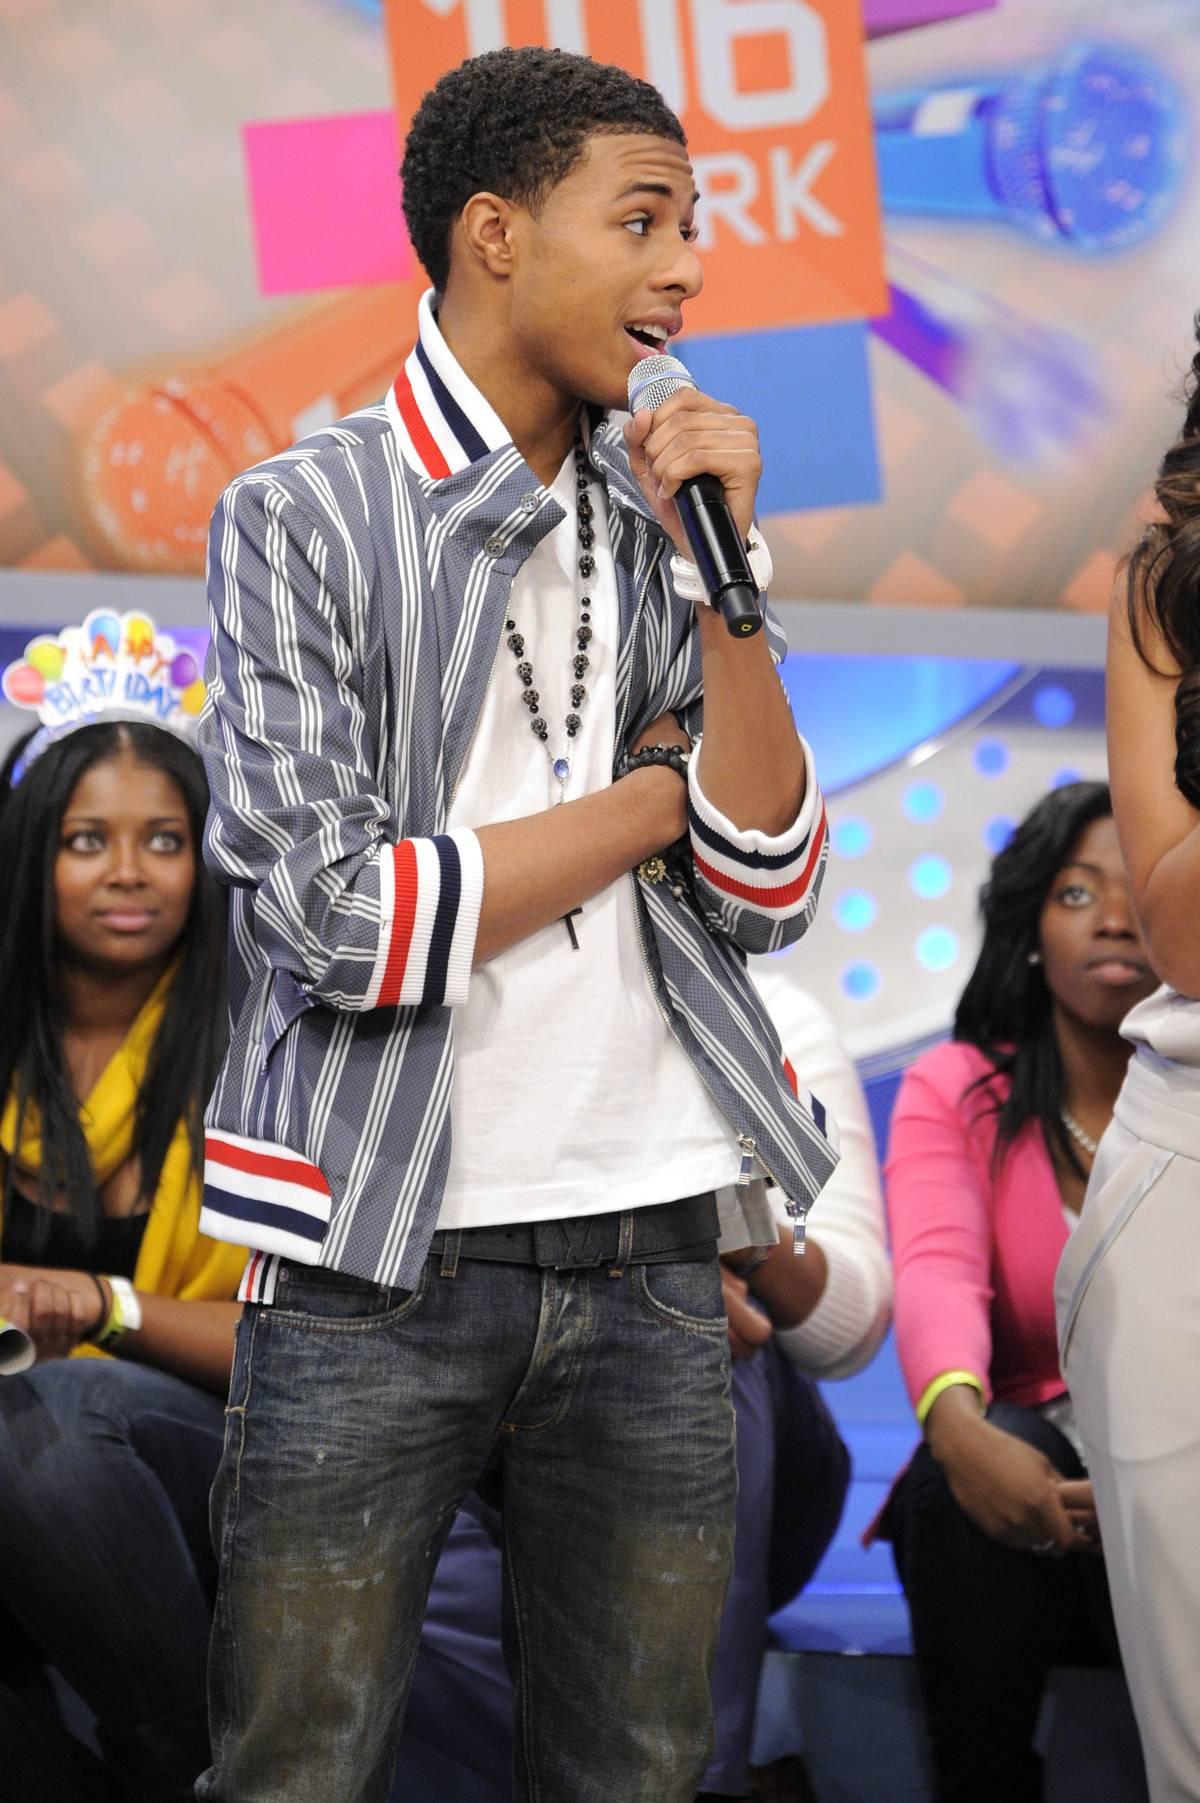 Ready for the World - Diggy Simmons at 106 & Park, January 20, 2012. (Photo: John Ricard / BET)